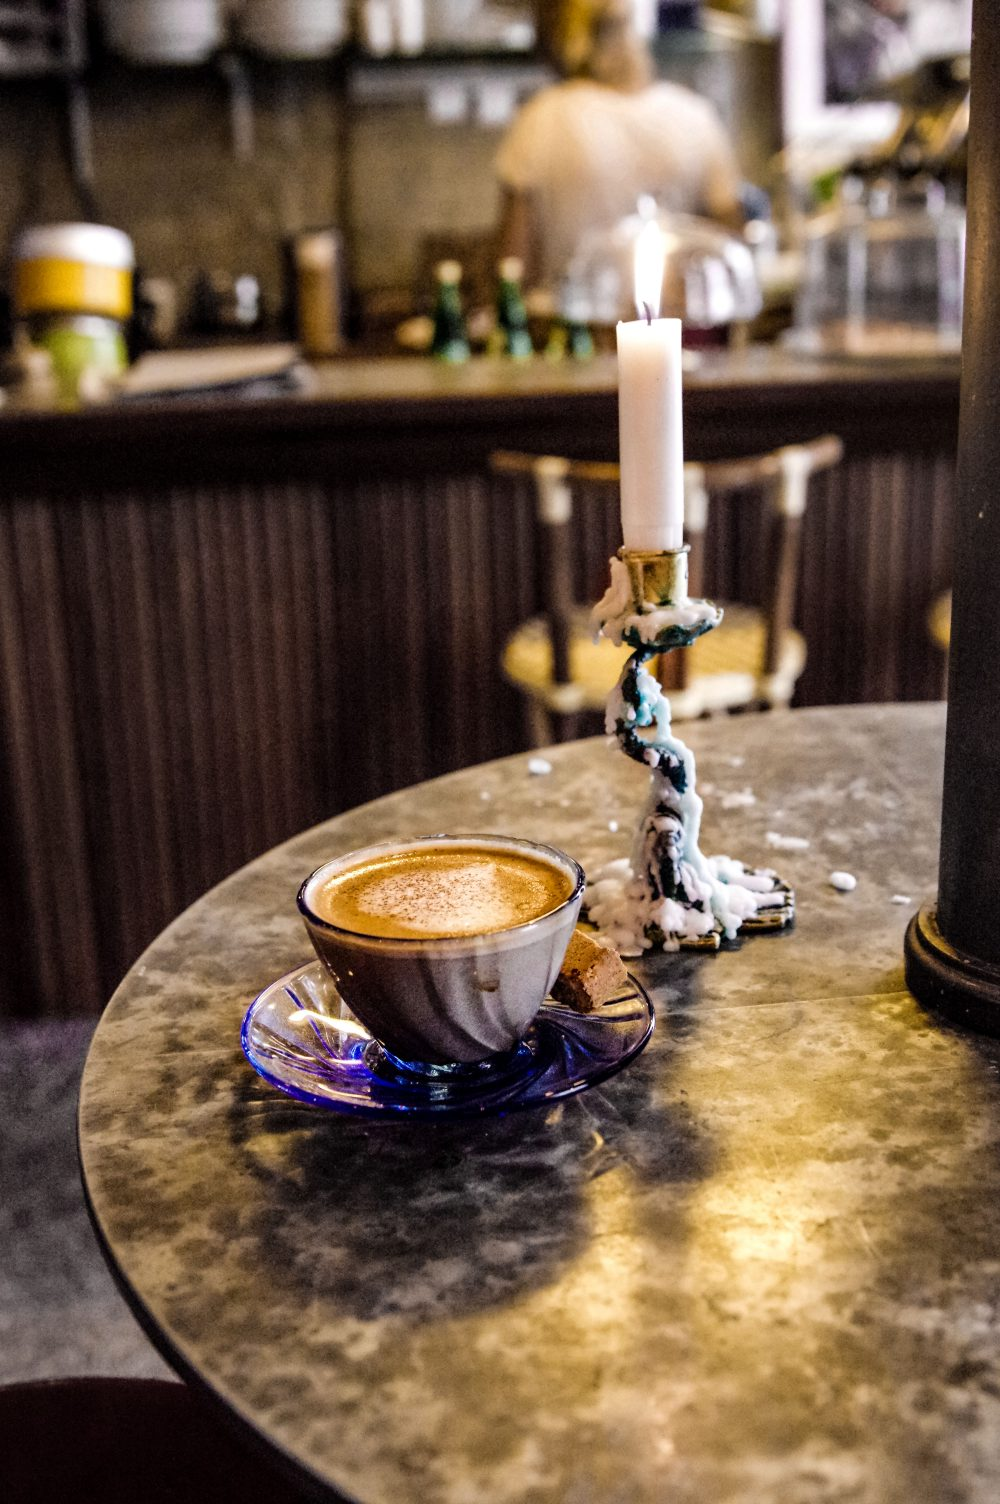 how to have the best september, fall vibes,cosy, hygge, wellness, self love self care, make the best of your september, coffee place, coffee shot, candles